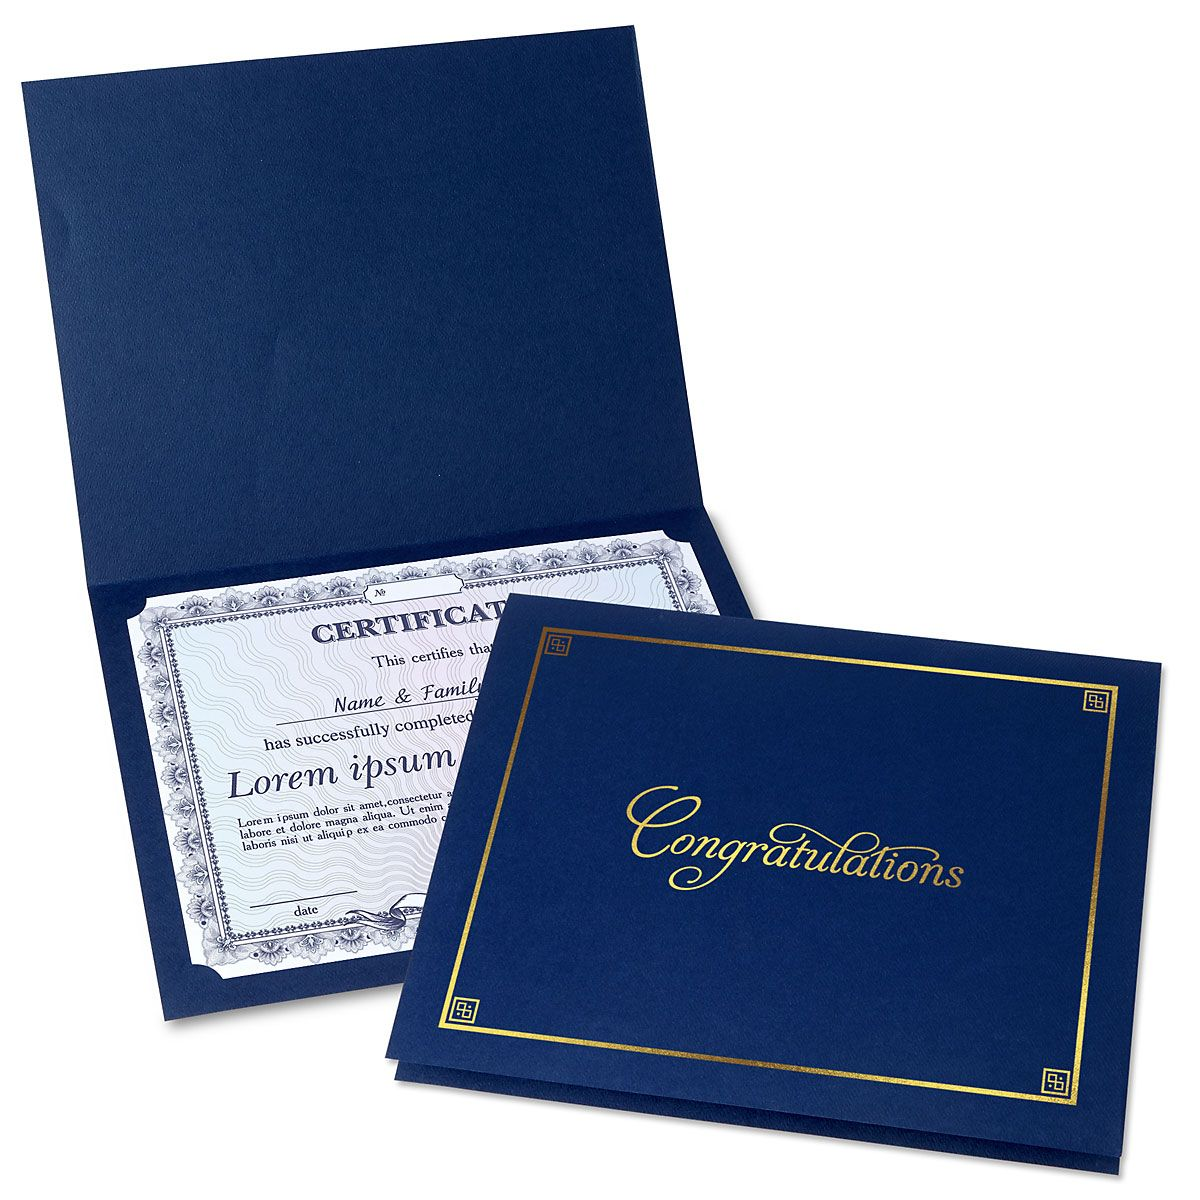 Congratulations Blue Certificate Folder with Gold Border